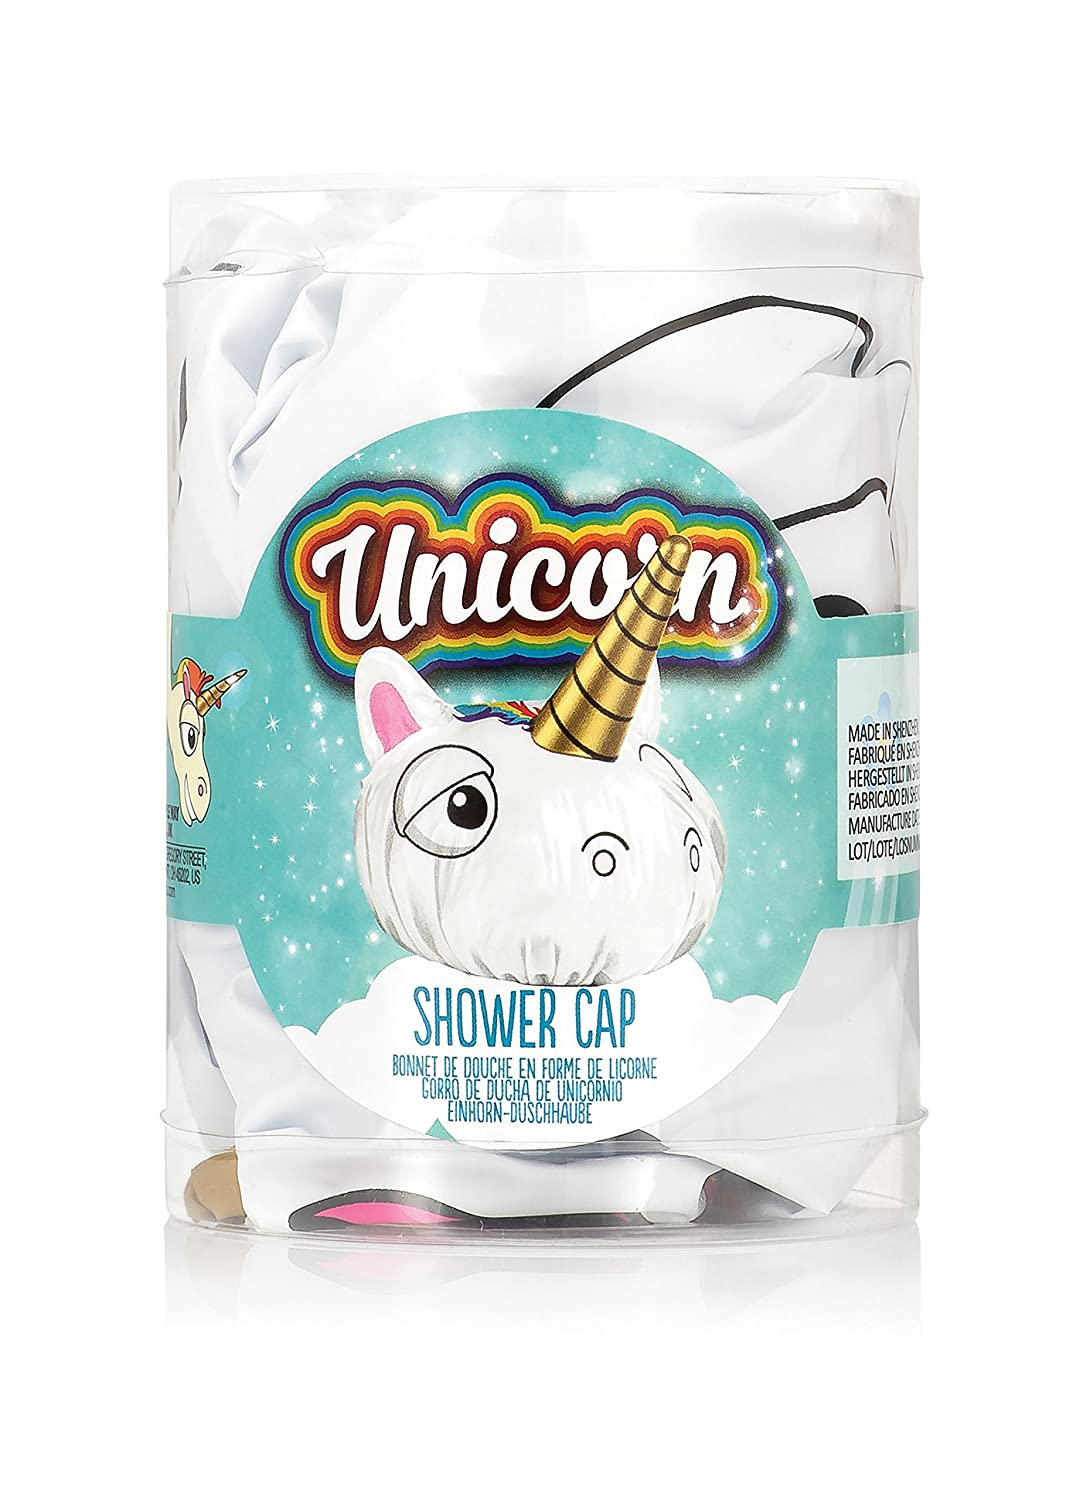 NPW Unicorn Shower Cap NP36633